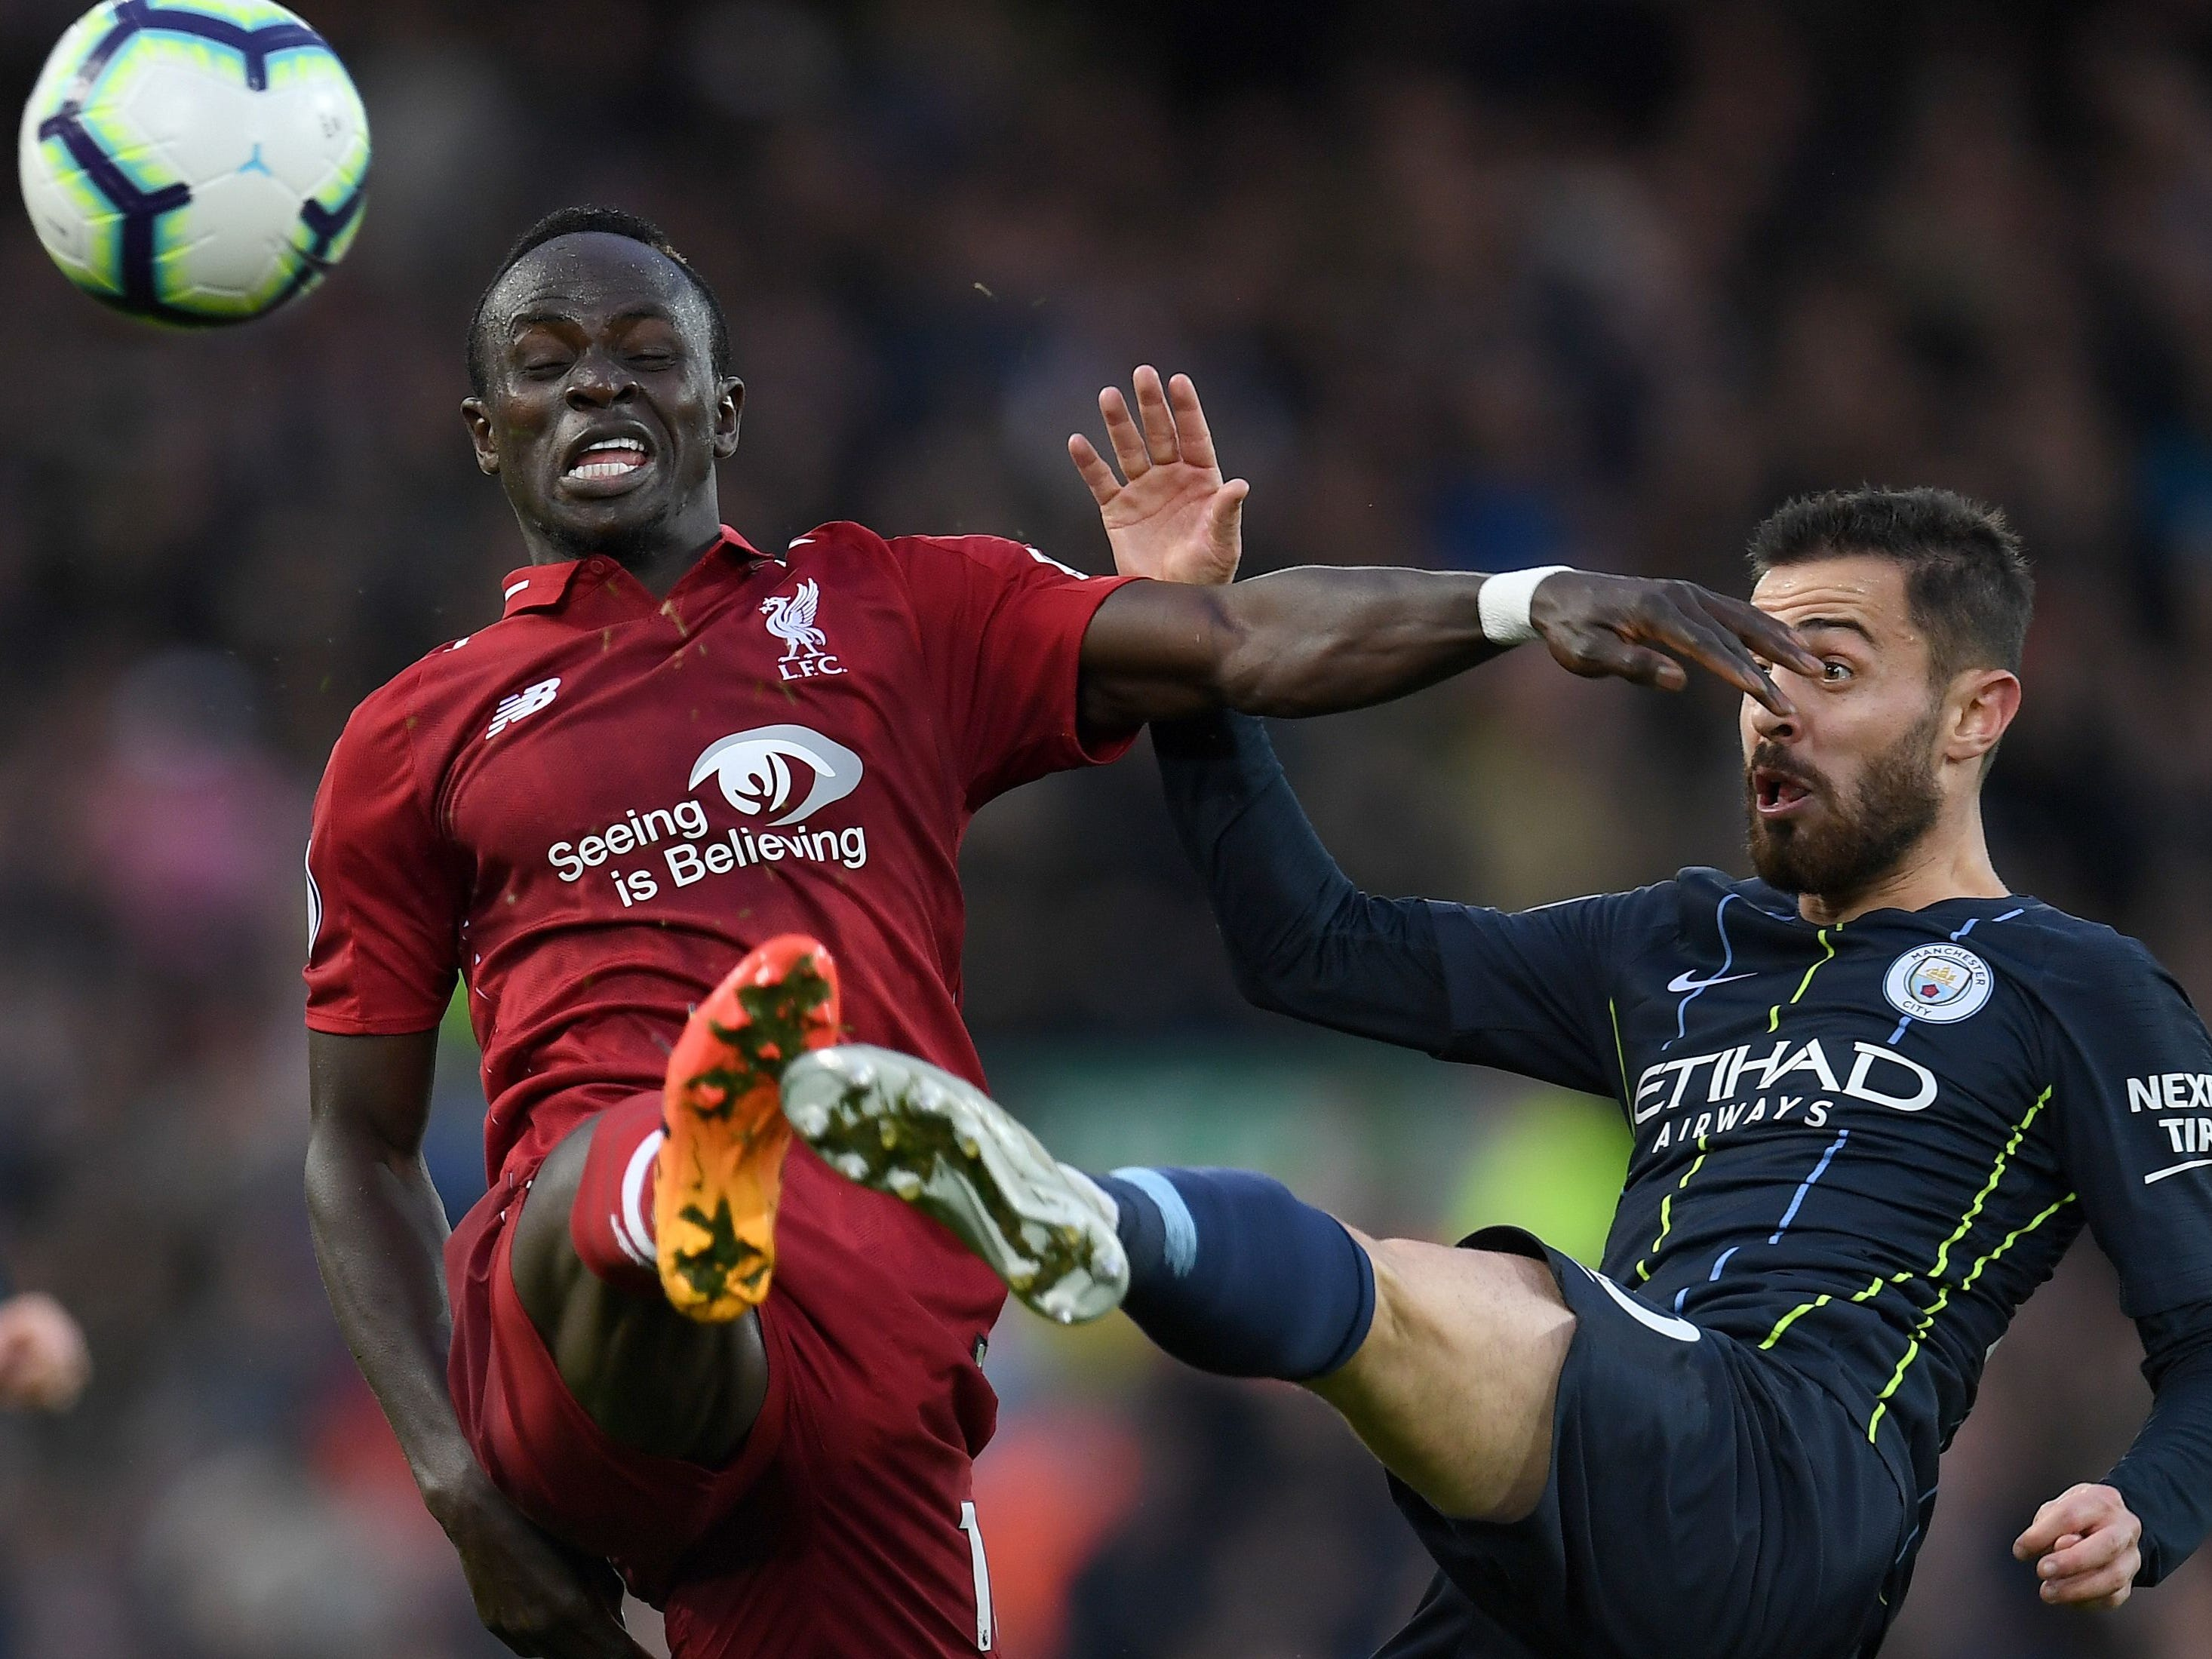 Liverpool's Sadio Mane vies with Manchester City's Bernardo Silva during the English Premier League football match between Liverpool and Manchester City at Anfield in Liverpool.